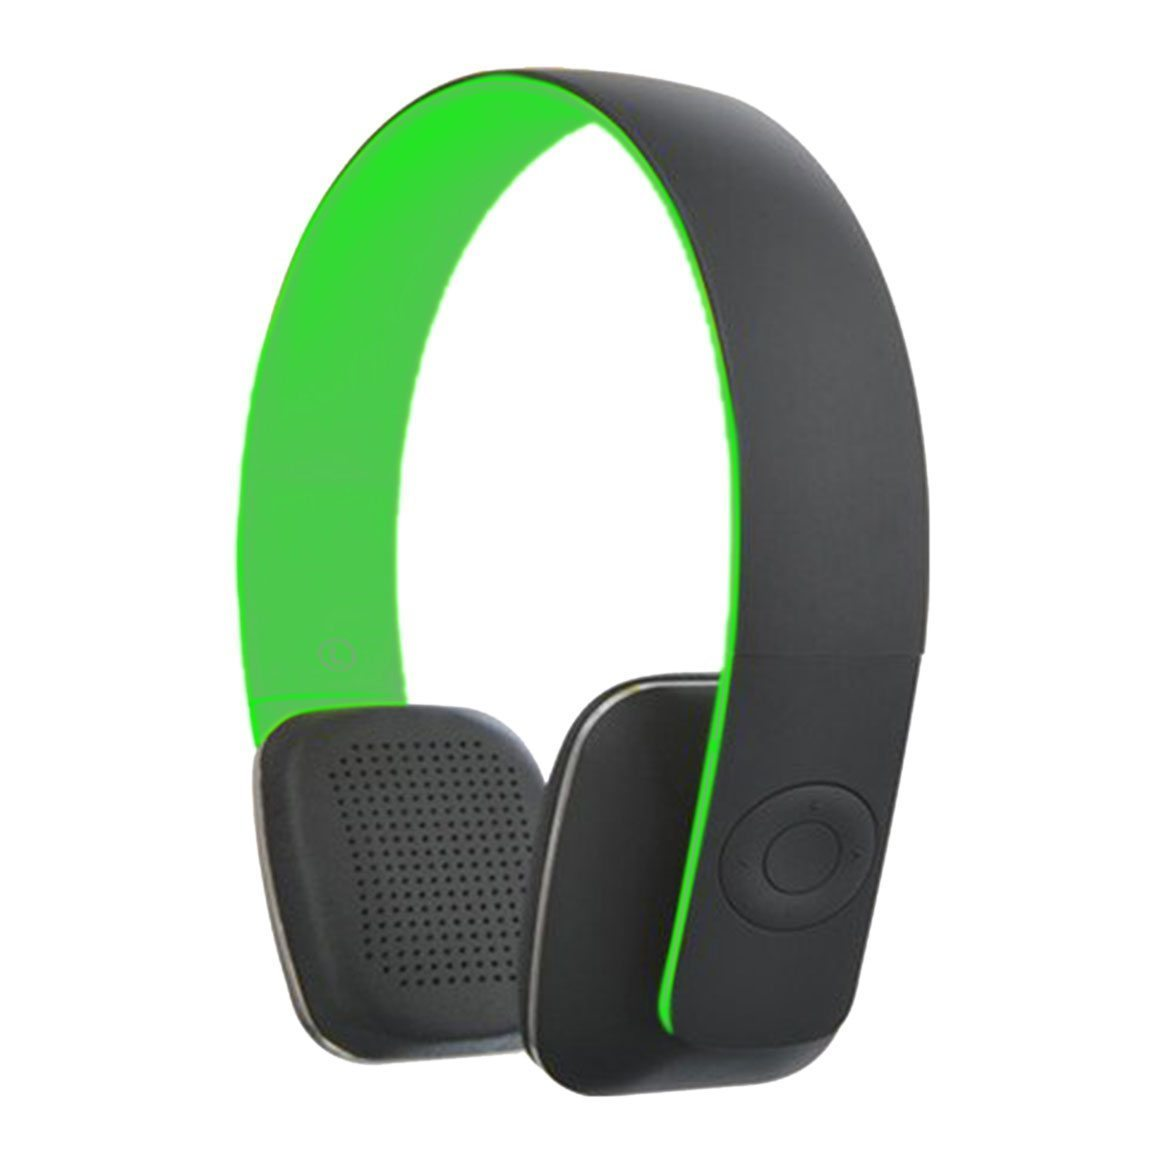 Headphones Bluetooth T2 green